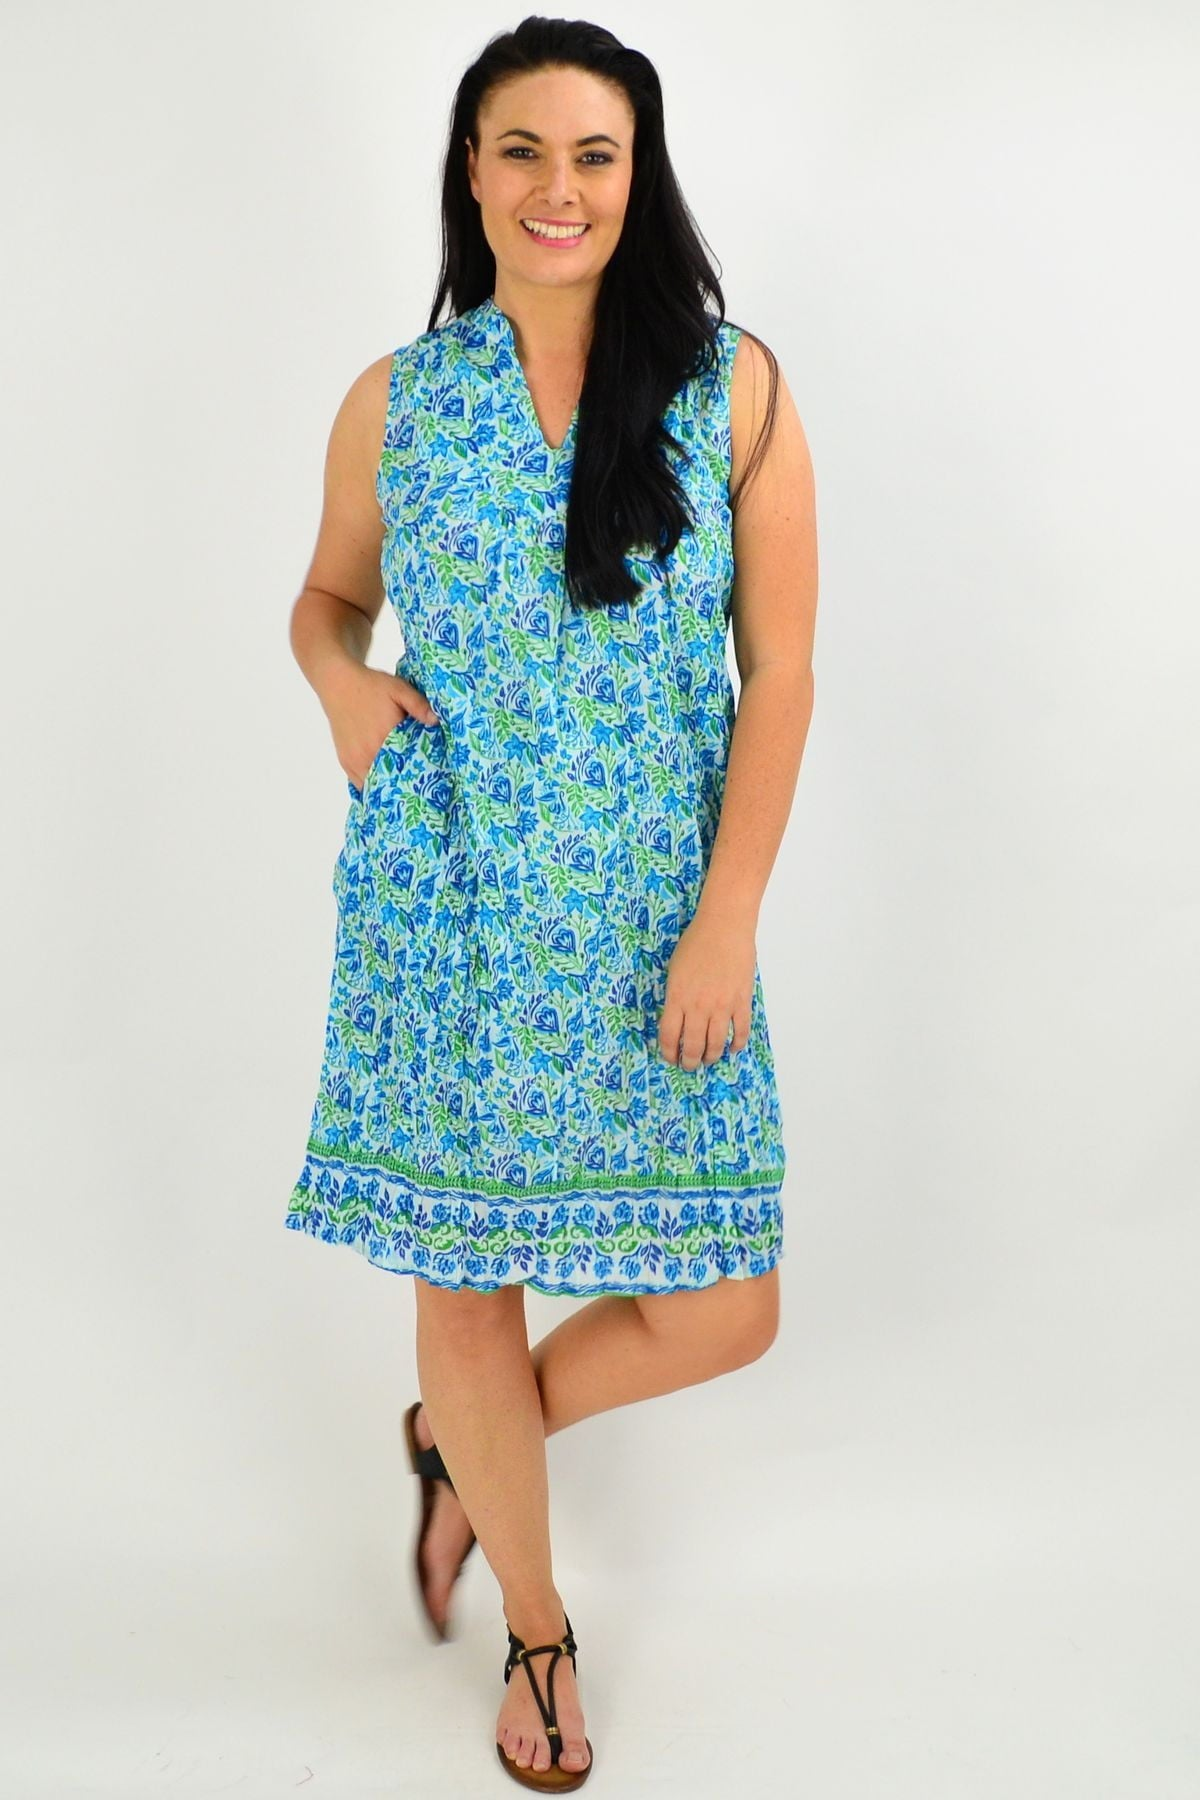 Blue Flower Garden Cotton Tunic Dress | I Love Tunics | Tunic Tops | Tunic | Tunic Dresses  | womens clothing online